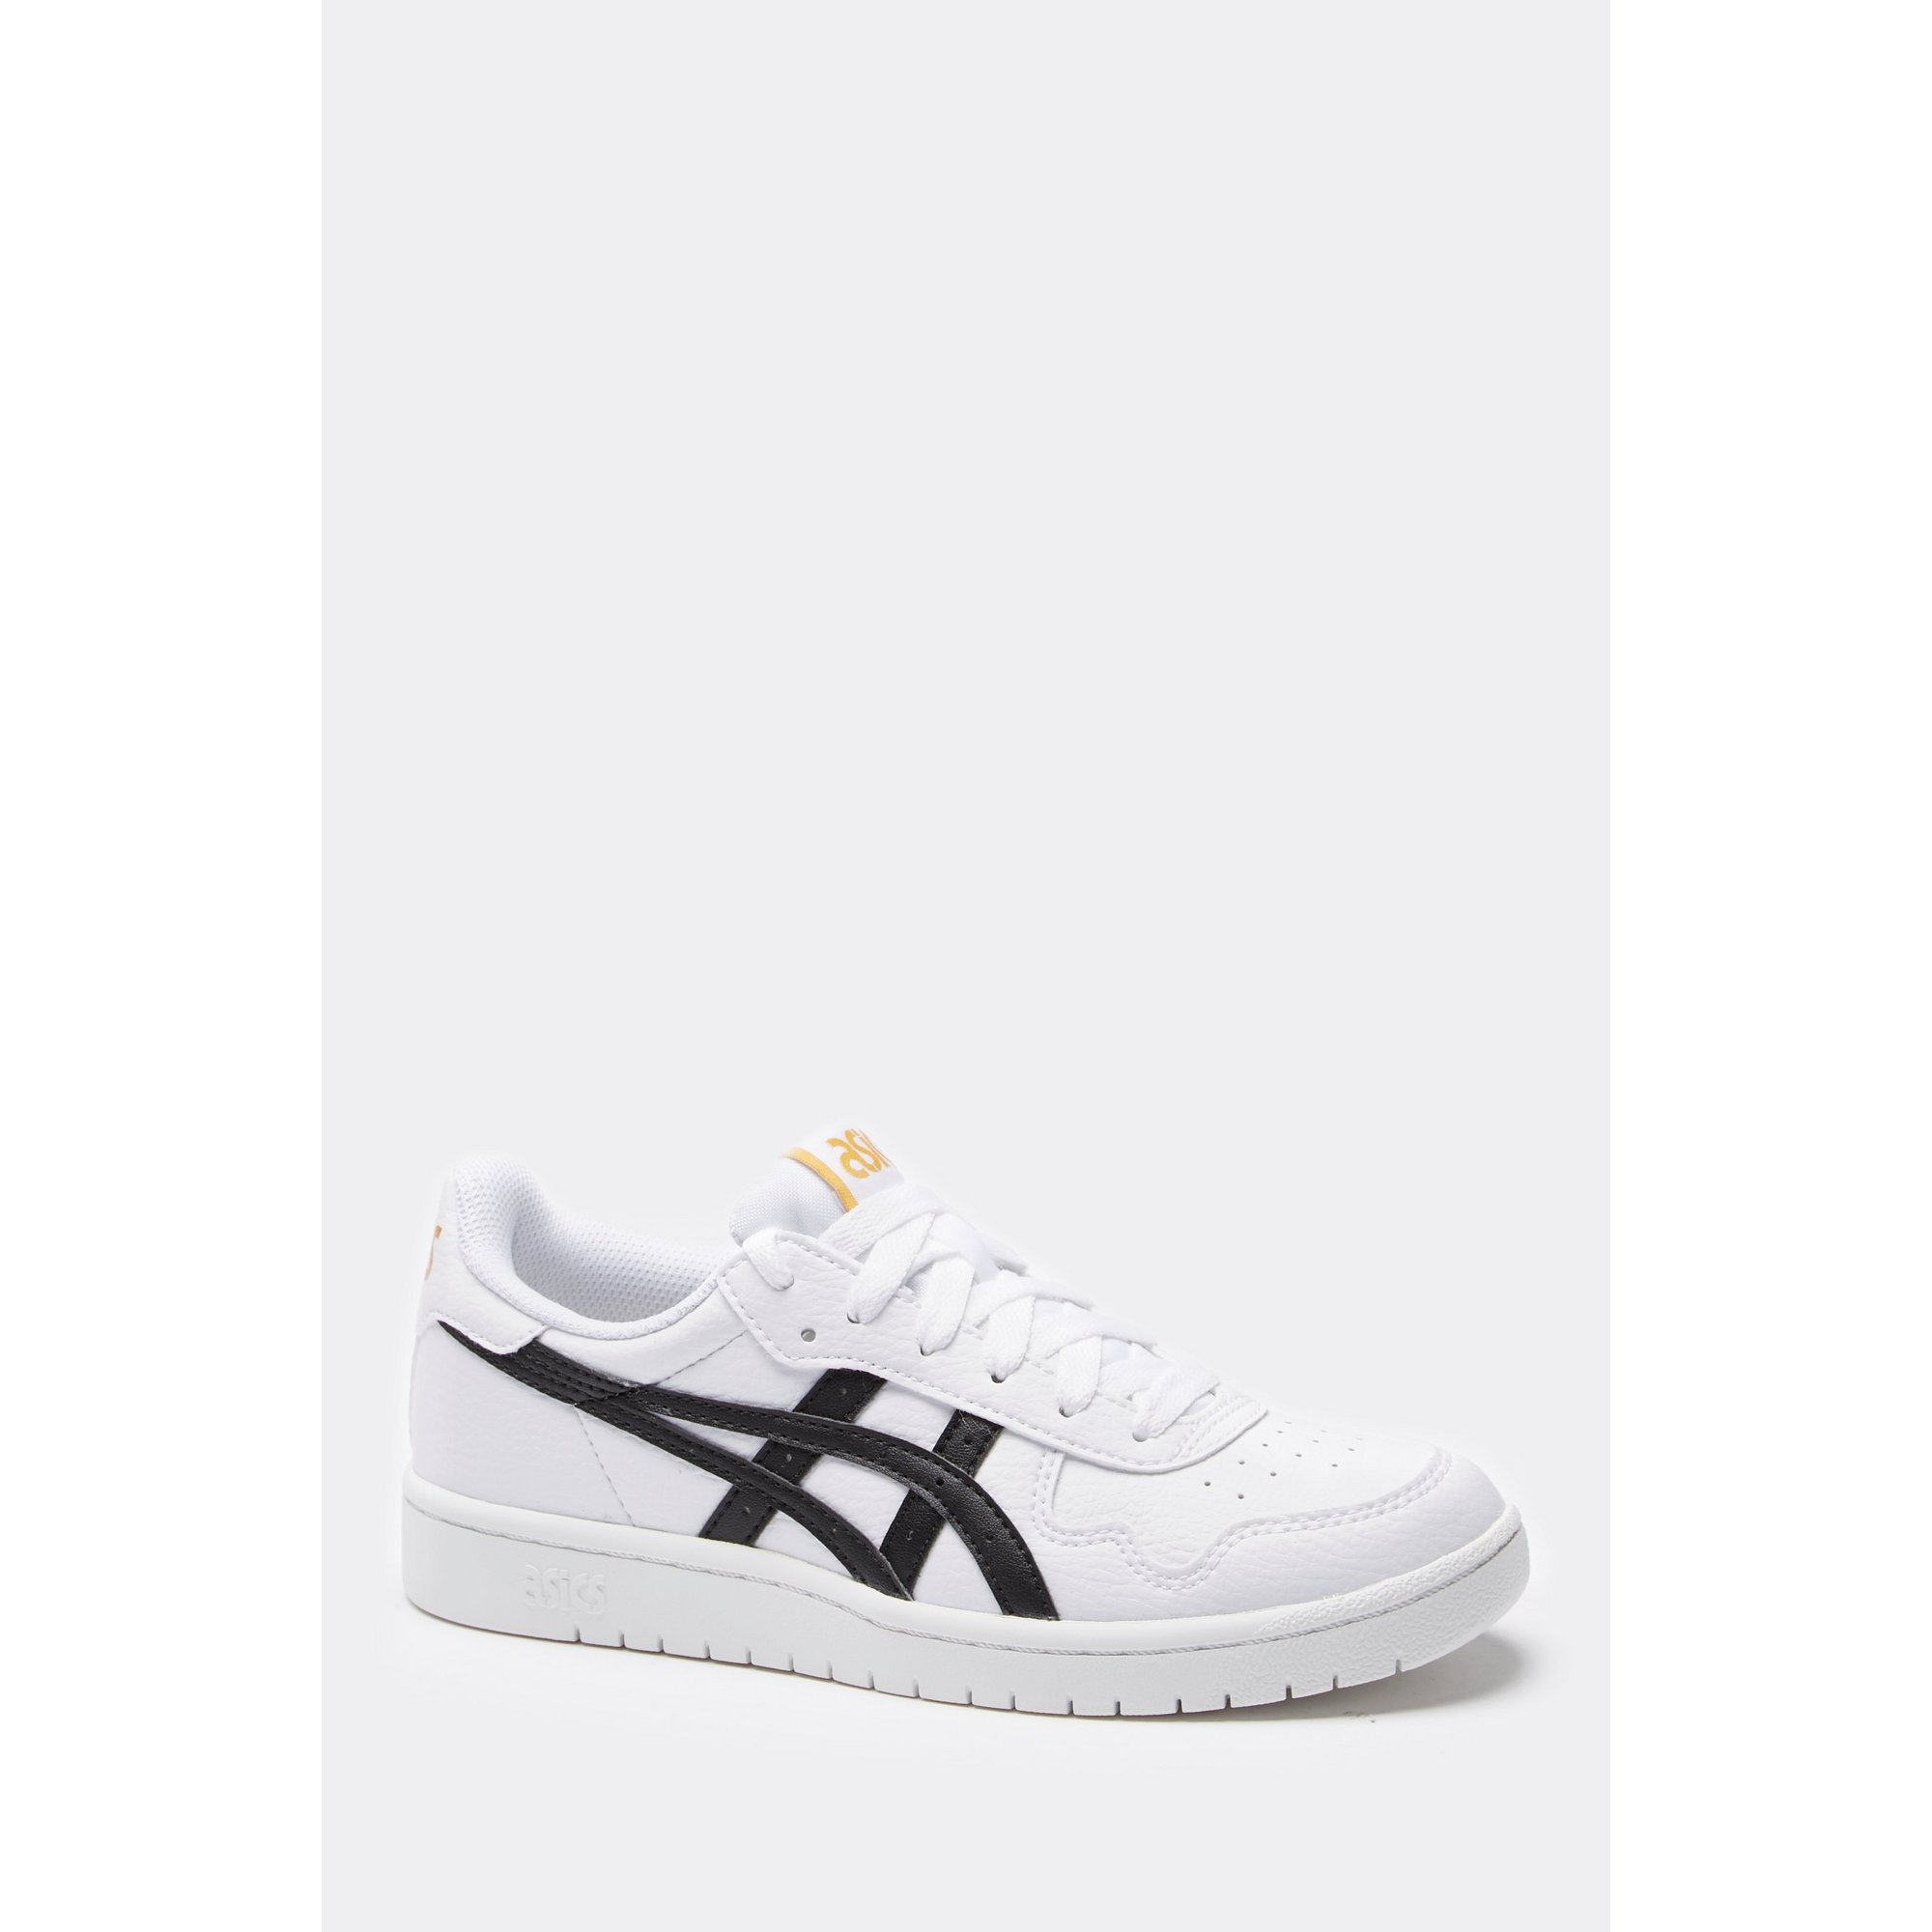 Image of ASICS Japan S Trainers